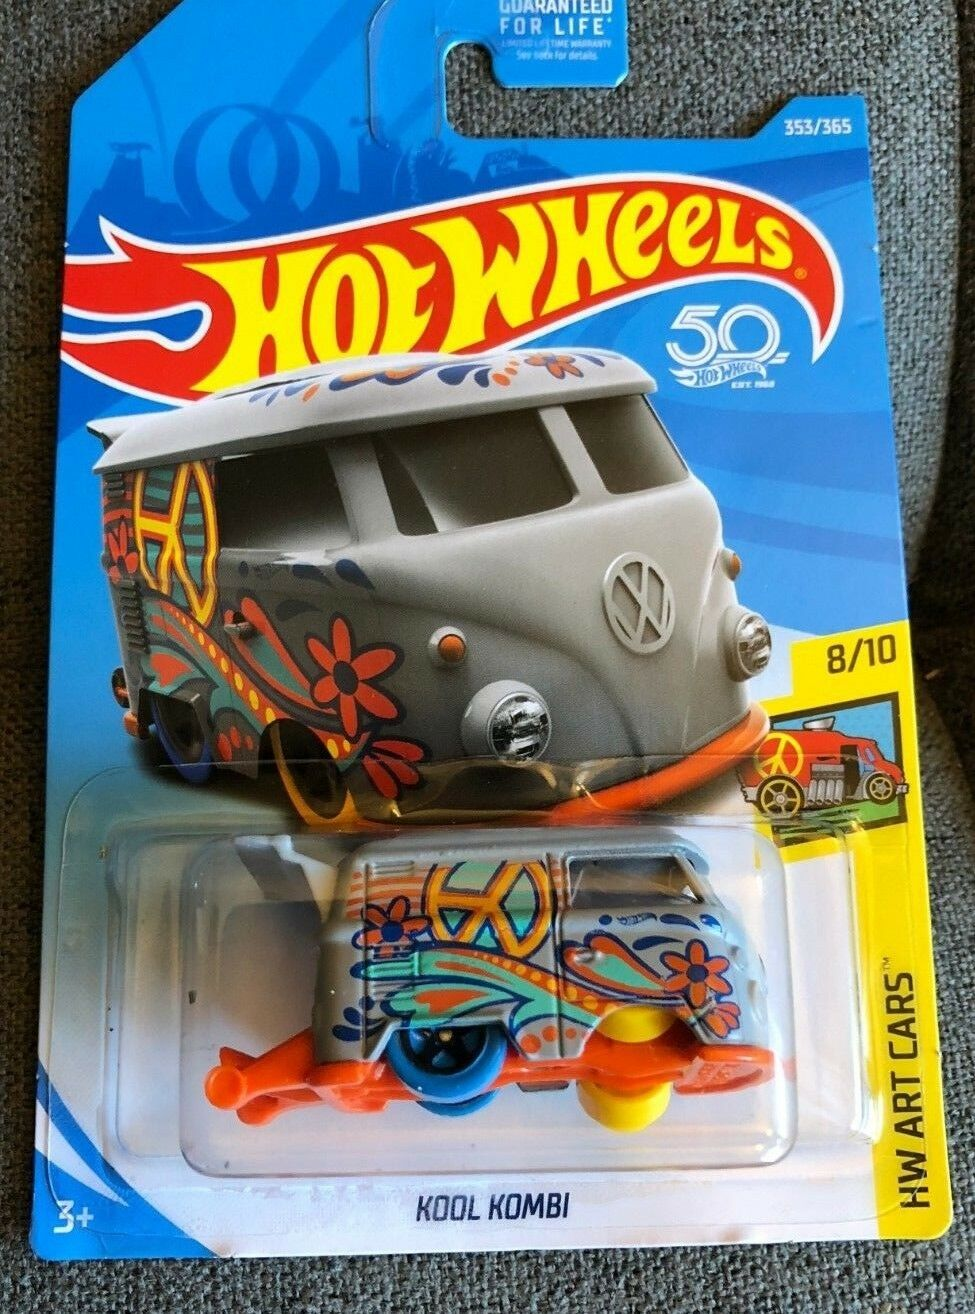 MULTIPLE ERROR   NEW  2018 Hot Wheels - KOOL KOMBI - ONE OF A KIND- RARE  VHTF